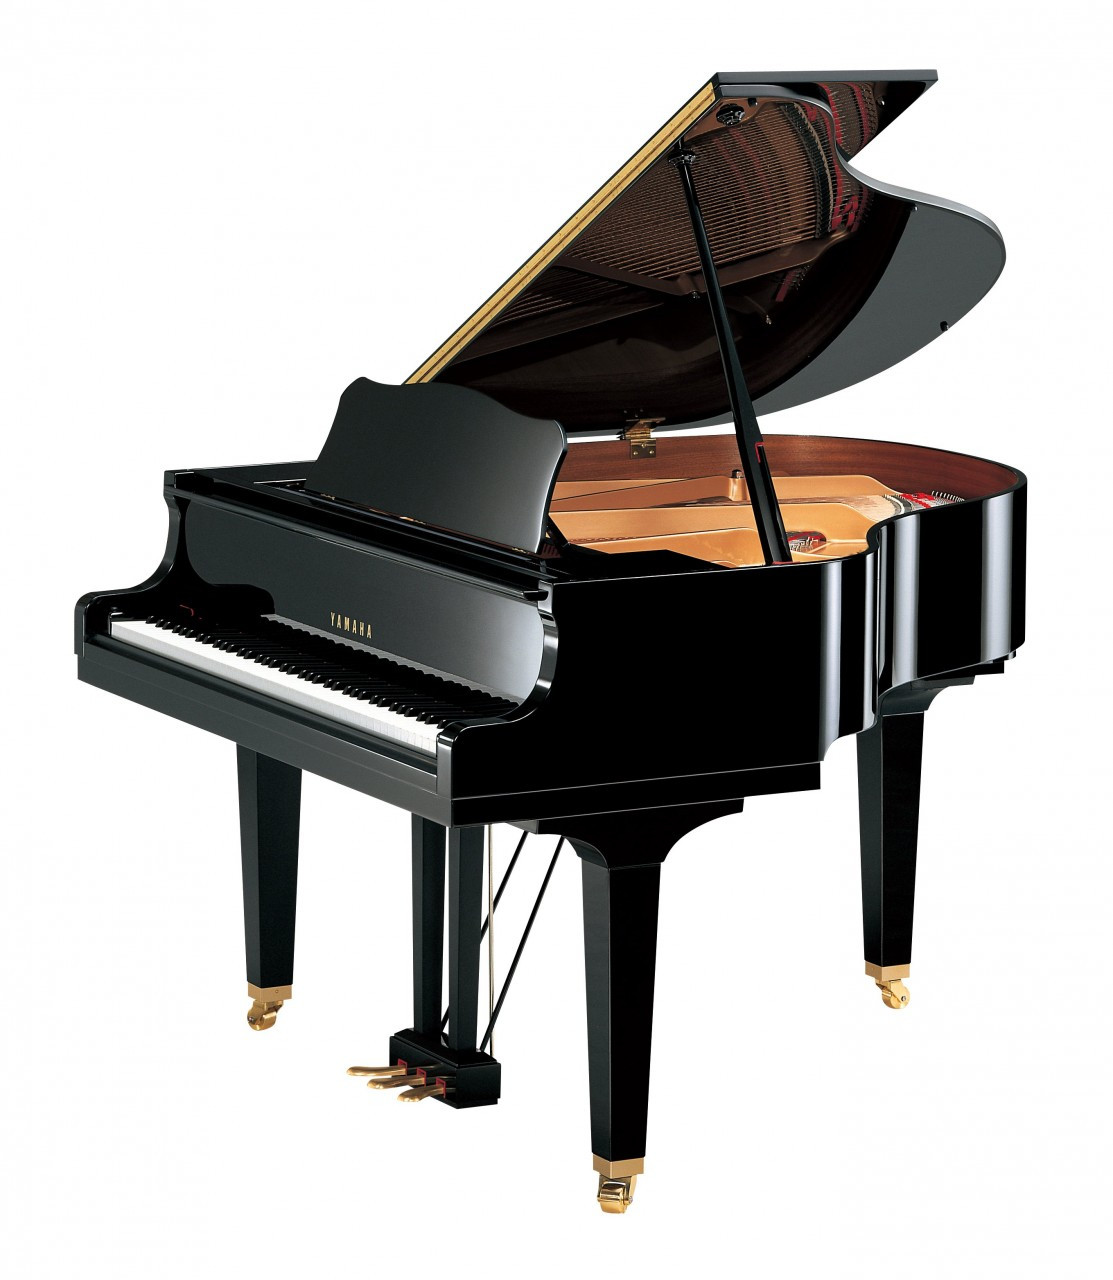 Yamaha gb1k yamaha grand pianos yamaha baby grand pianos for How big is a grand piano